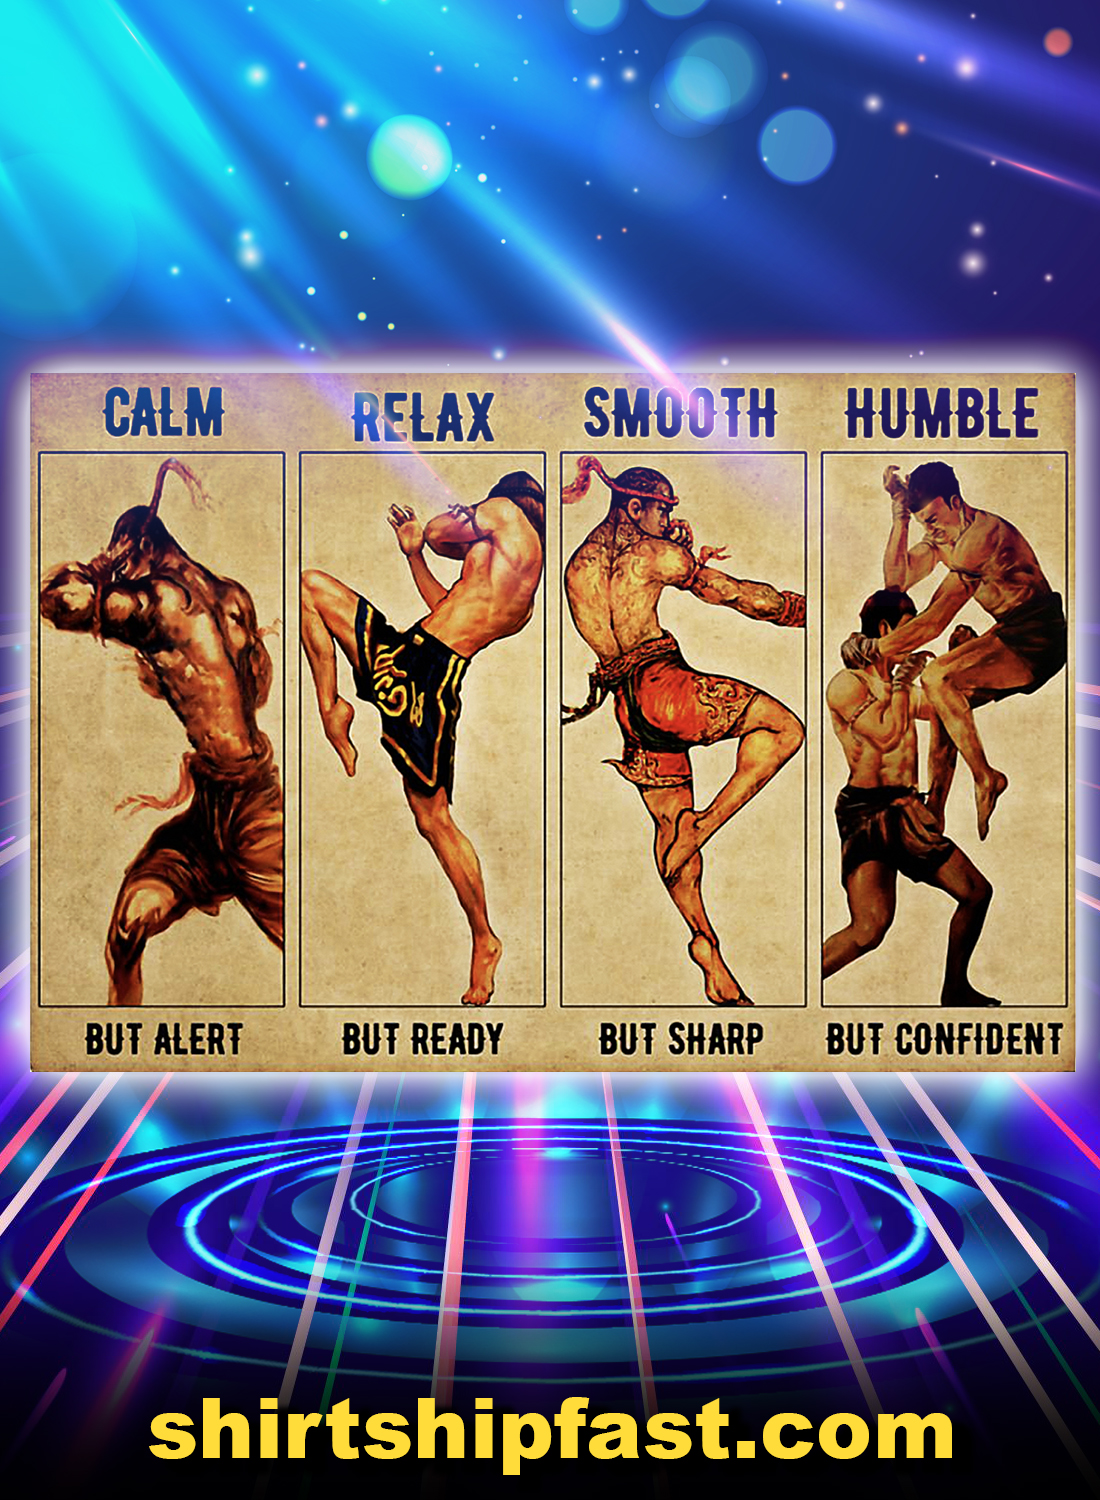 Calm relax smooth humble muay thai poster